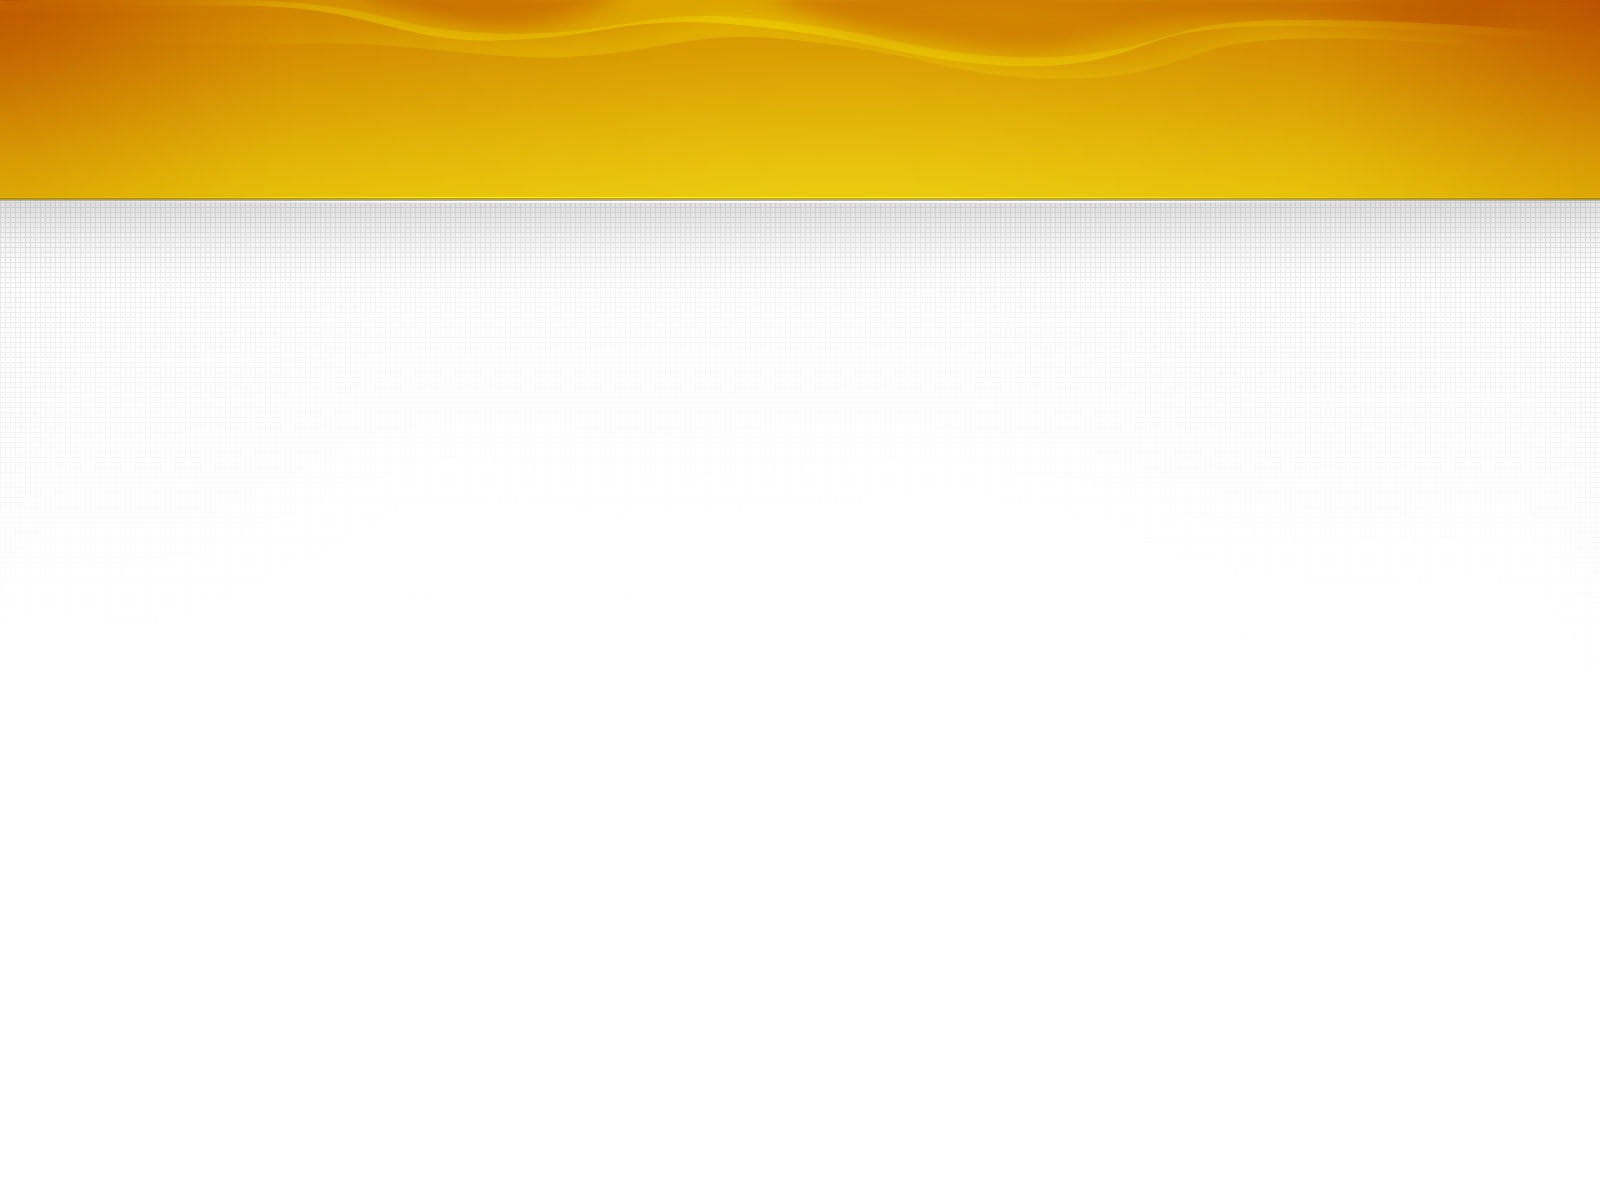 Yellow Web Header Powerpoint Design